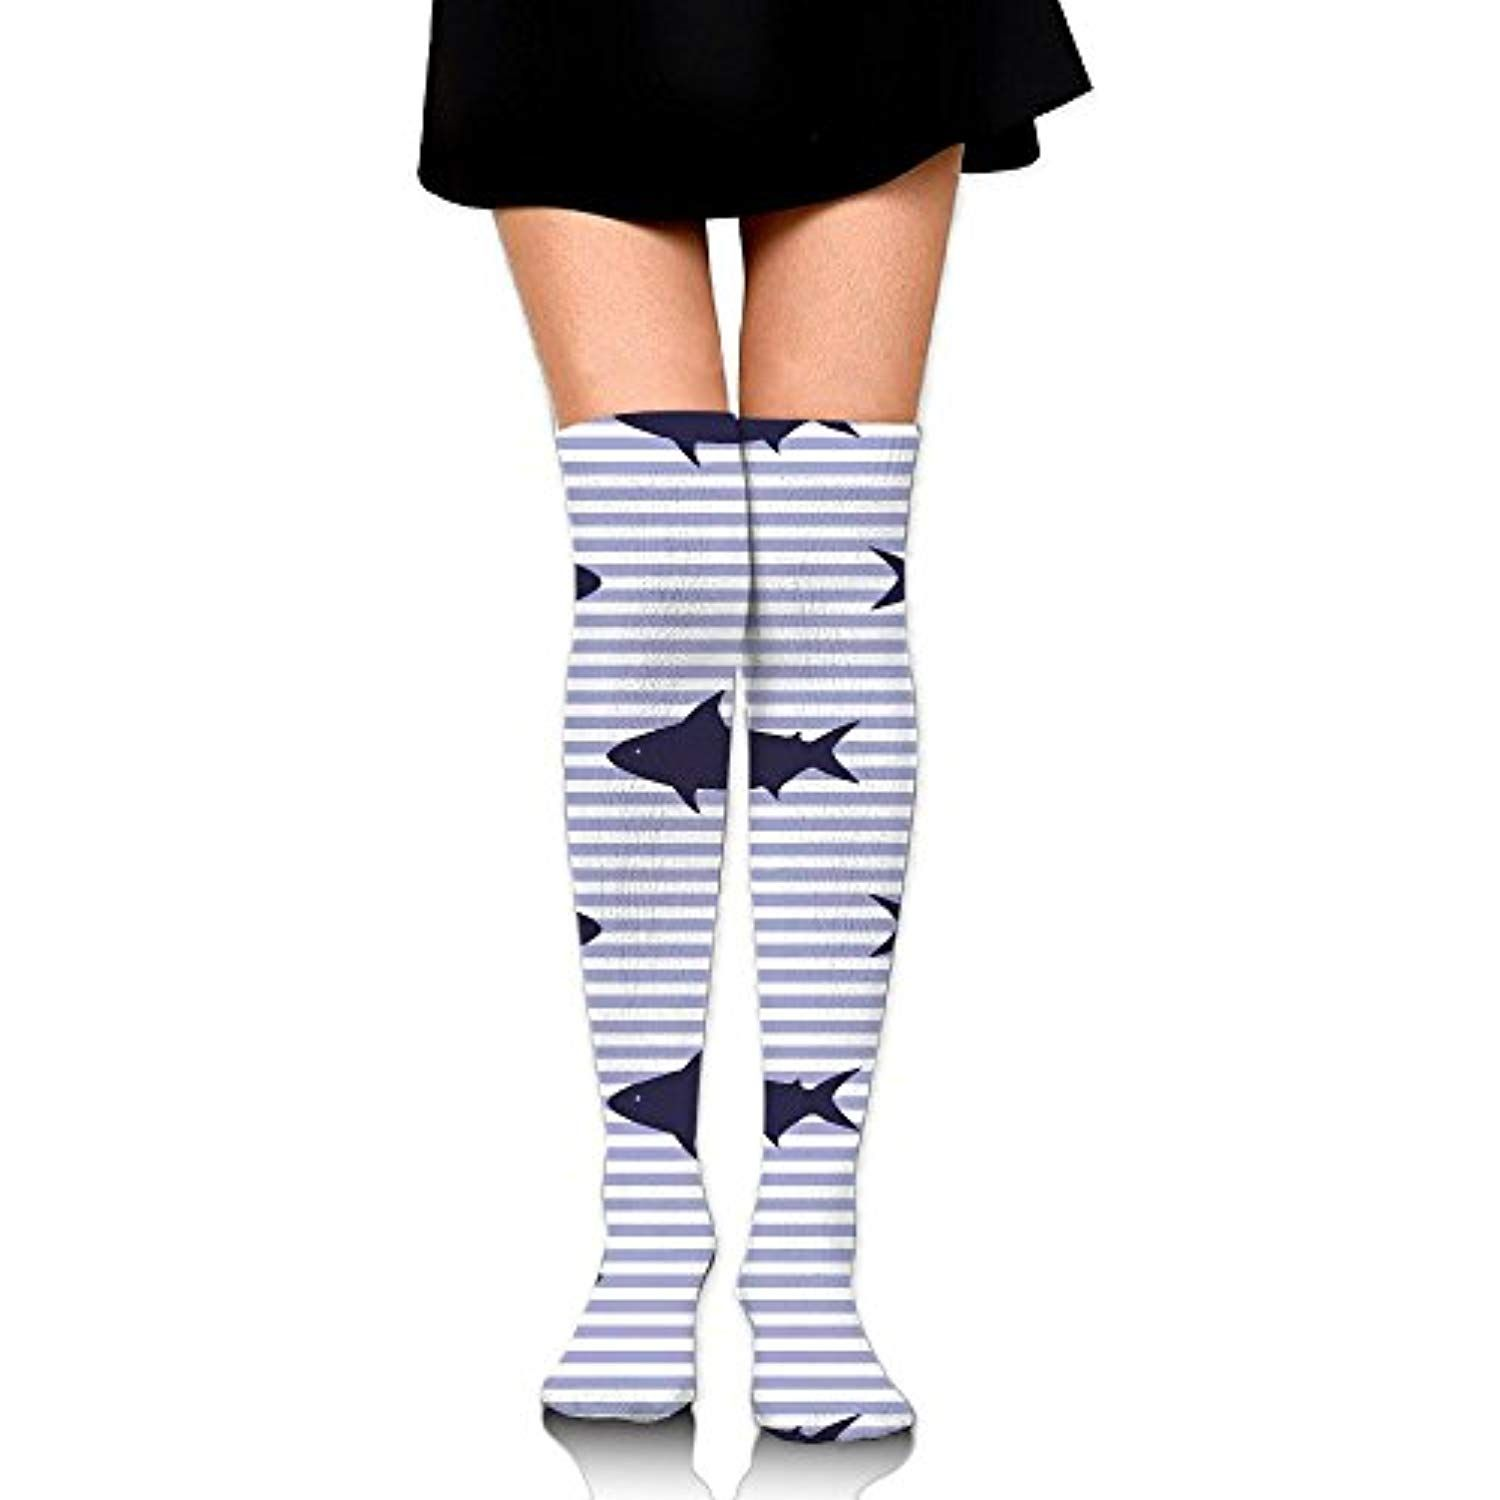 d48df444e0b61a PengMin Seamless Sharks And Stripes Cotton Compression Socks For Women.  Graduated Stockings For Nurses,